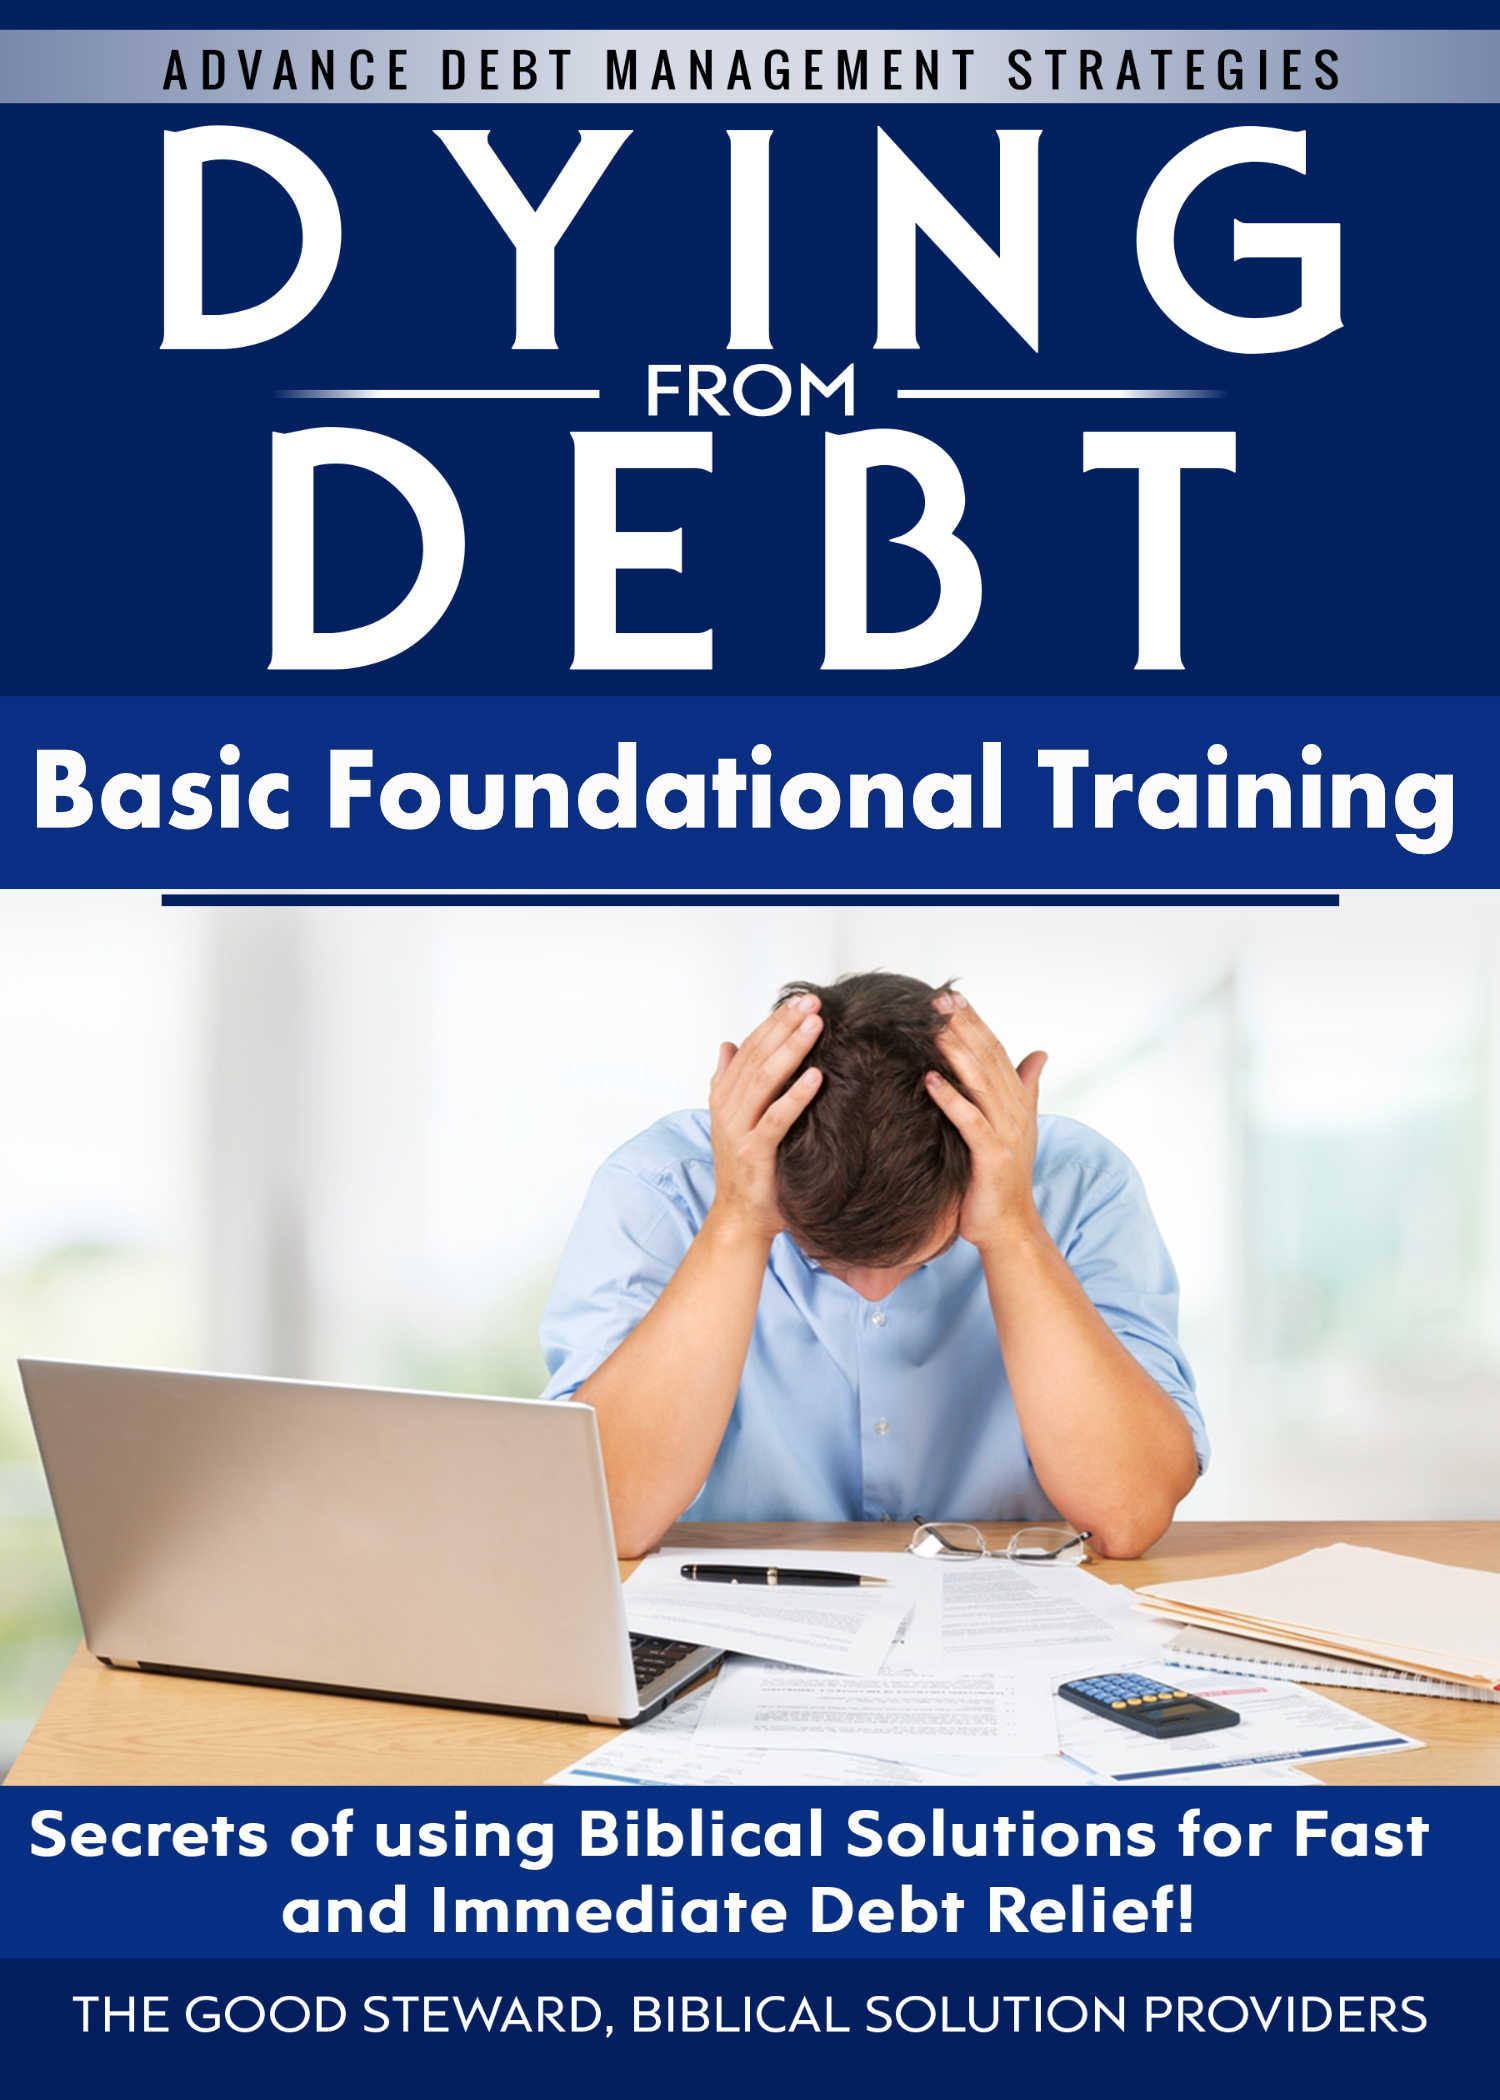 Basic Foundational Training